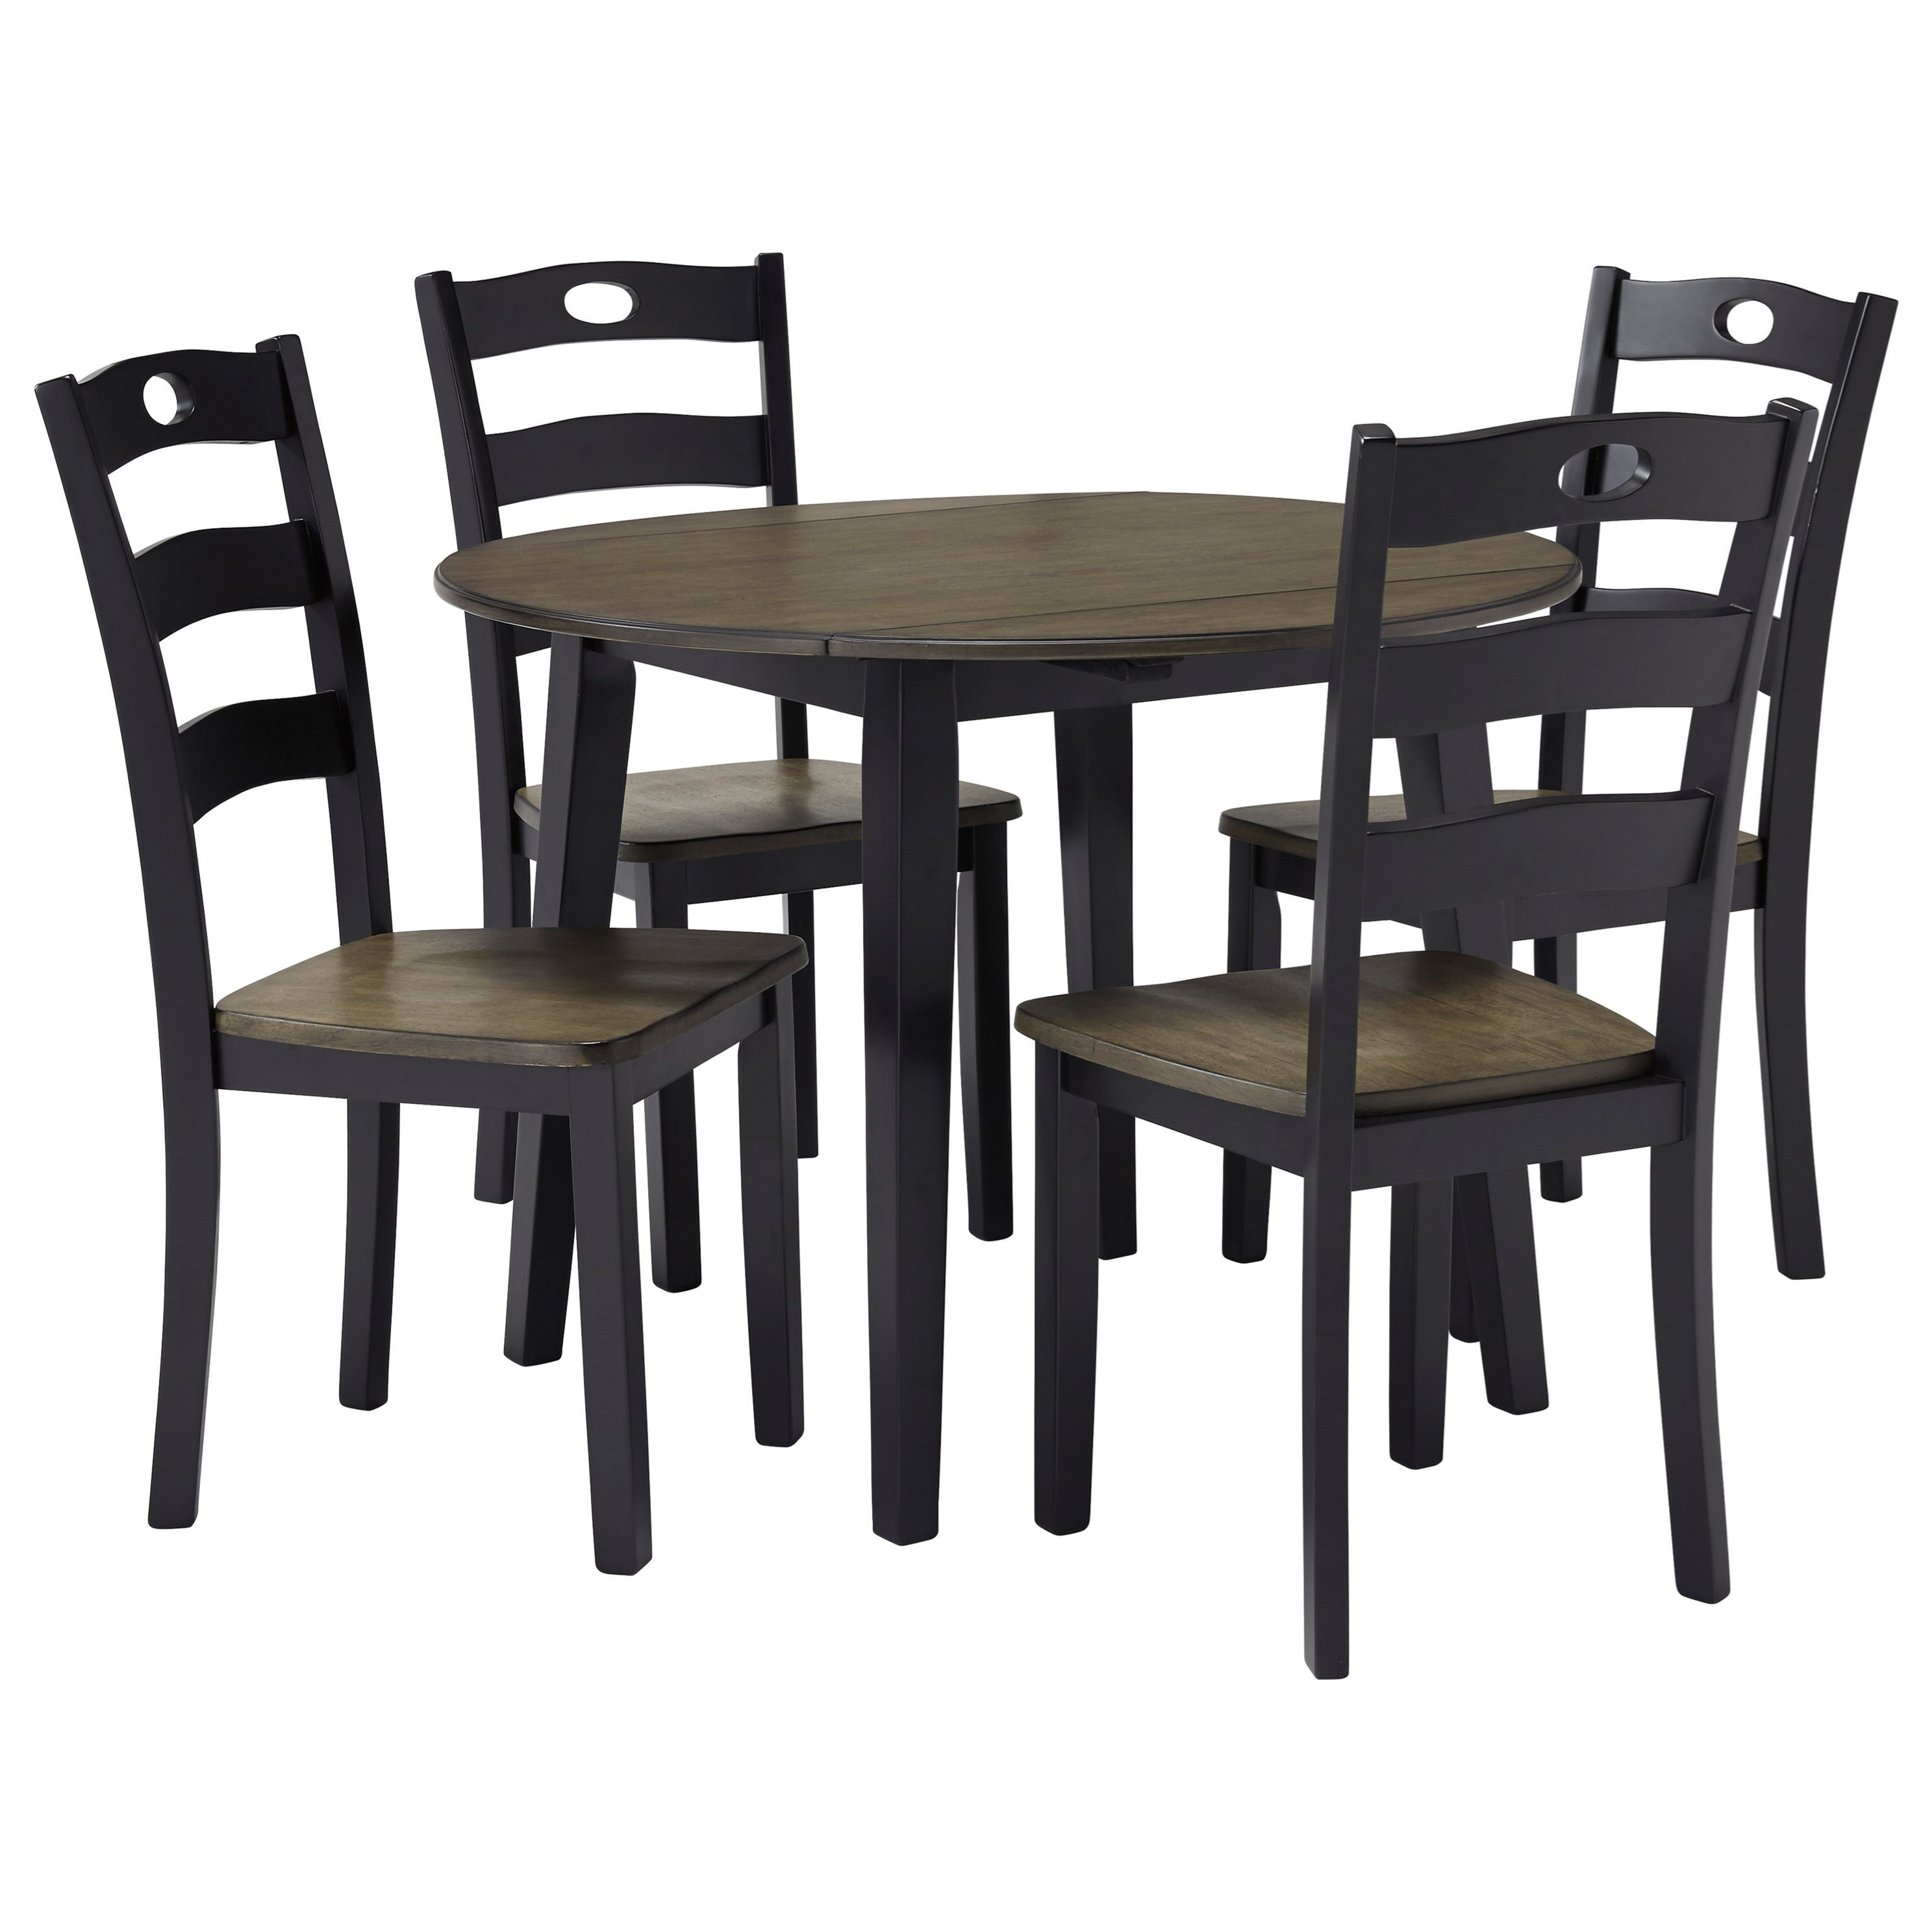 Froshburg 5-Piece Dining Set by Signature Design by Ashley at HomeWorld Furniture